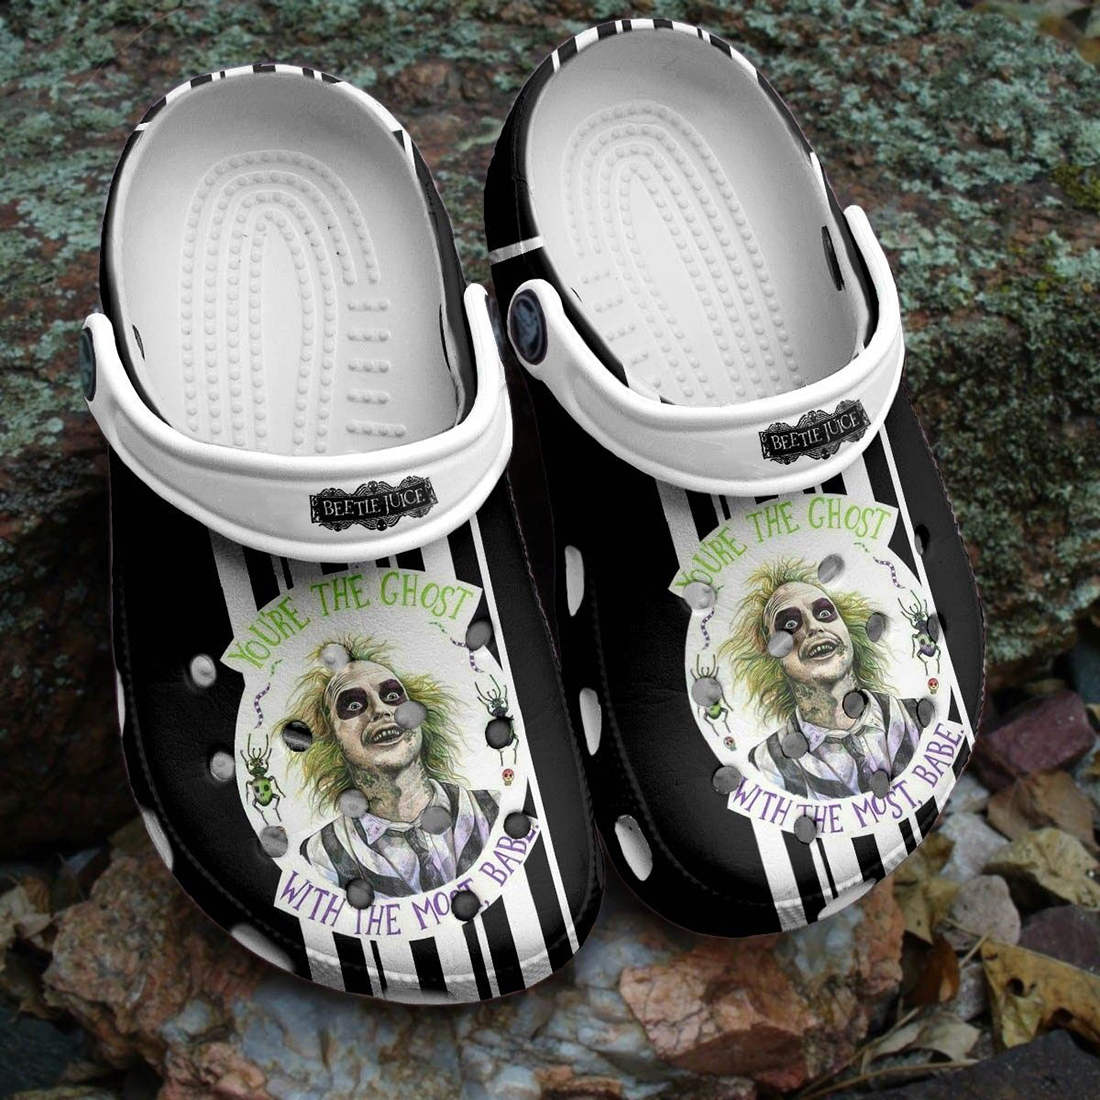 Beetlejuice You're the ghost with the most babe halloween crocband crocs shoes